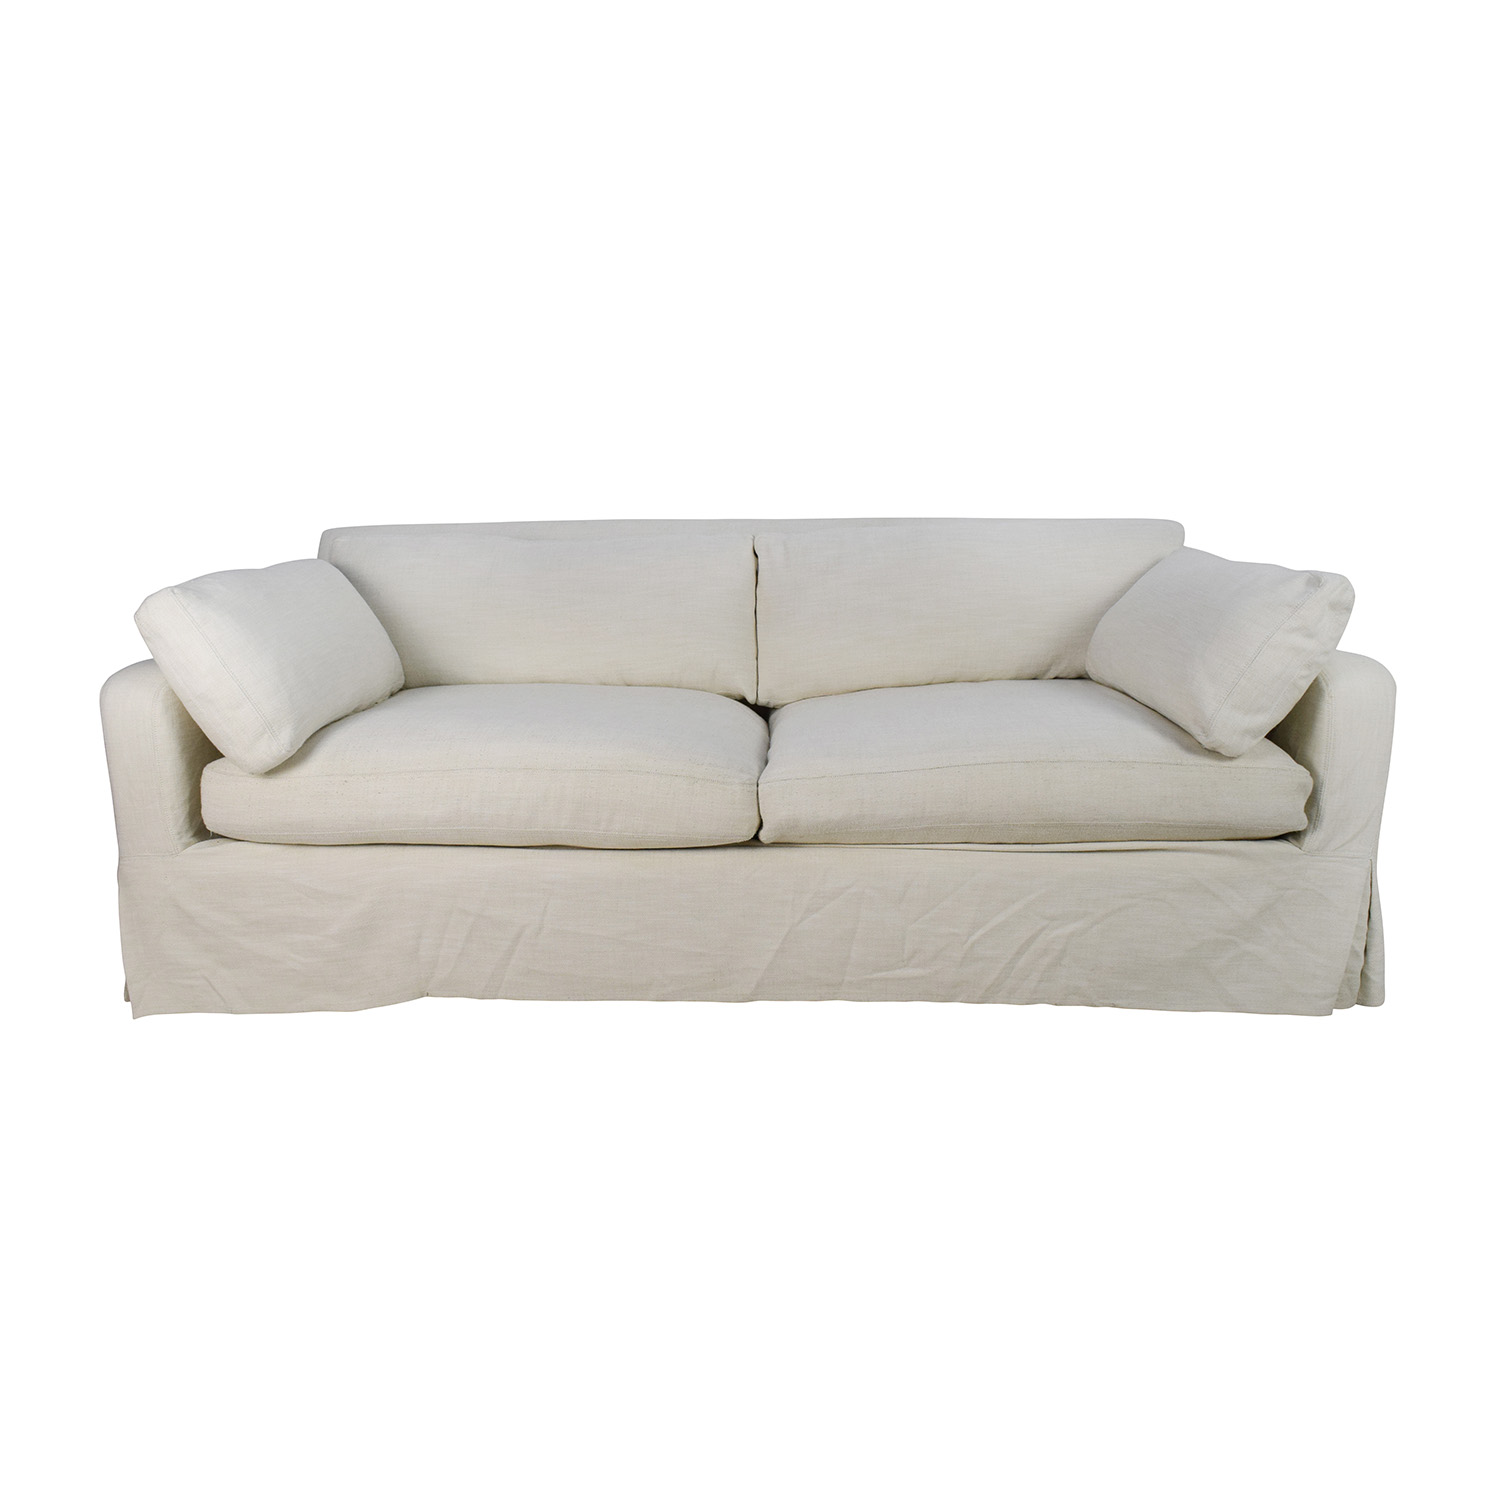 buy Restoration Hardware Belgian Track Arm Slipcovered Sofa Restoration Hardware